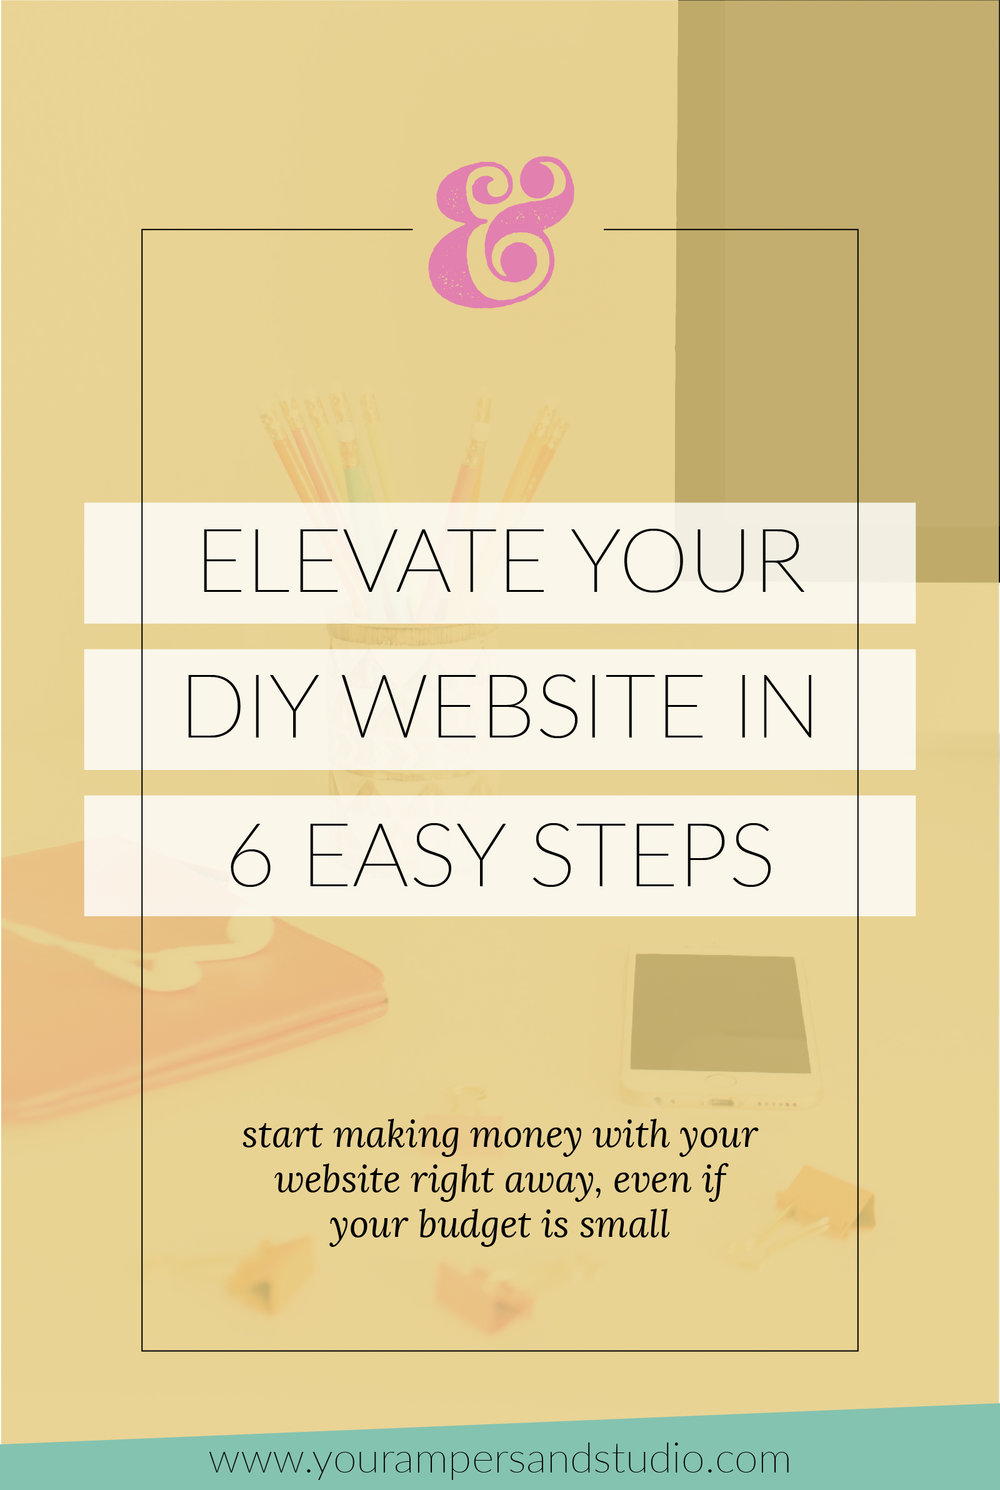 Elevate your DIY website in 6 easy steps so you can start making money right away, even if your budget is small. - Your Ampersand Studio